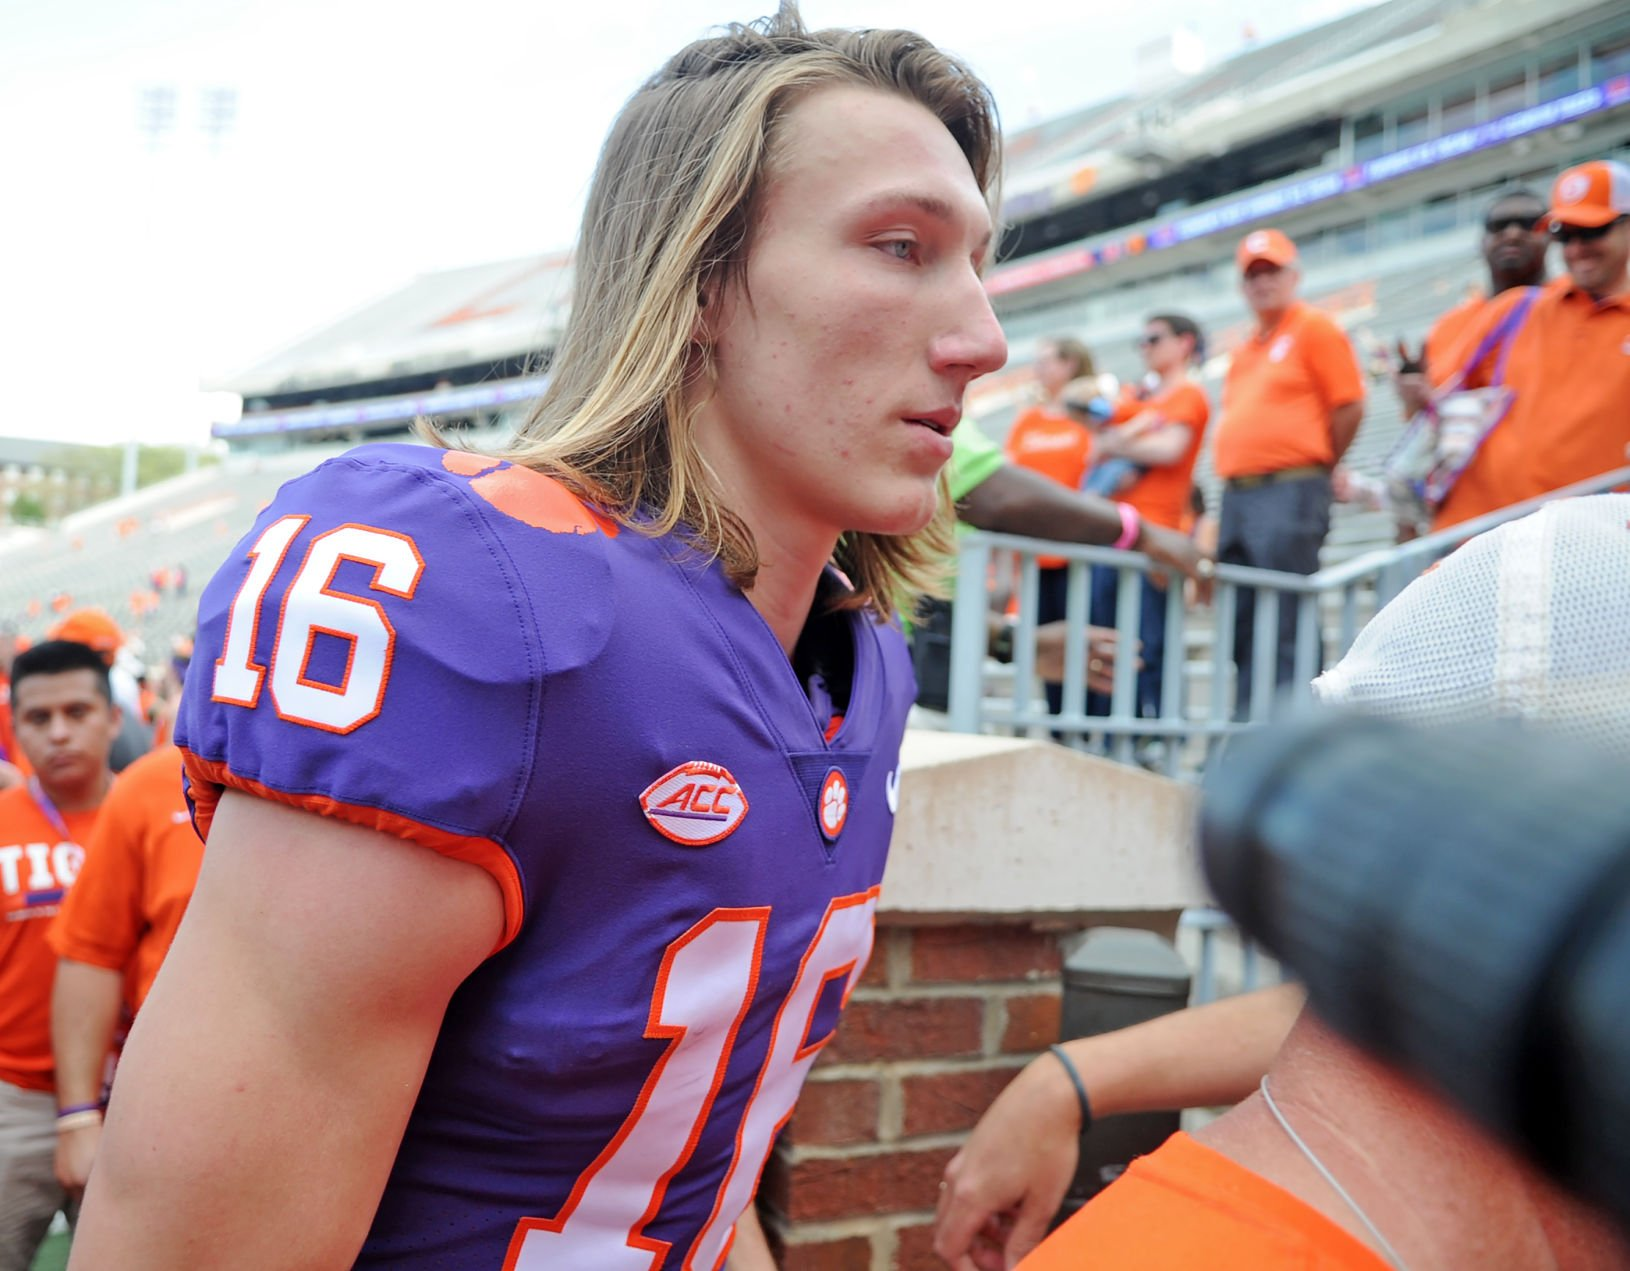 Clemson football Top 10: The Trevor Lawrence hype machine is in full effect | Post and Courier